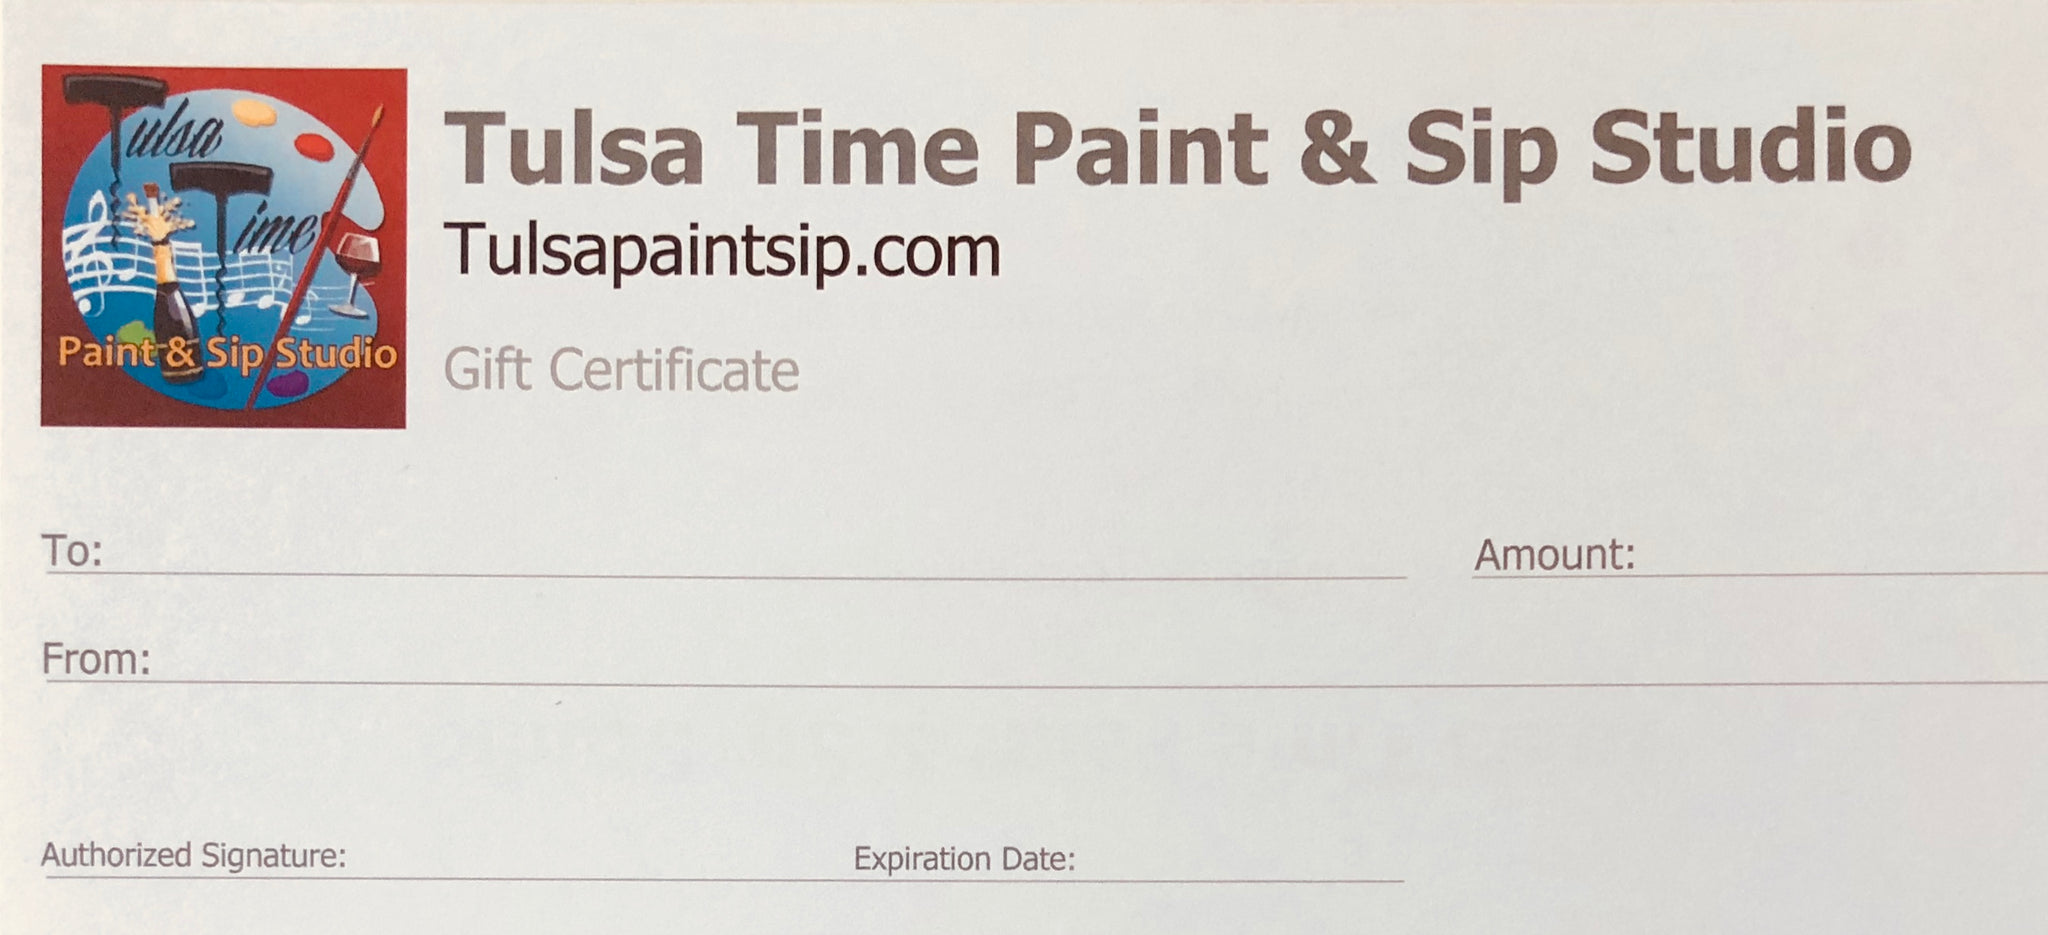 Gift Certificate for Paint & Sip Class